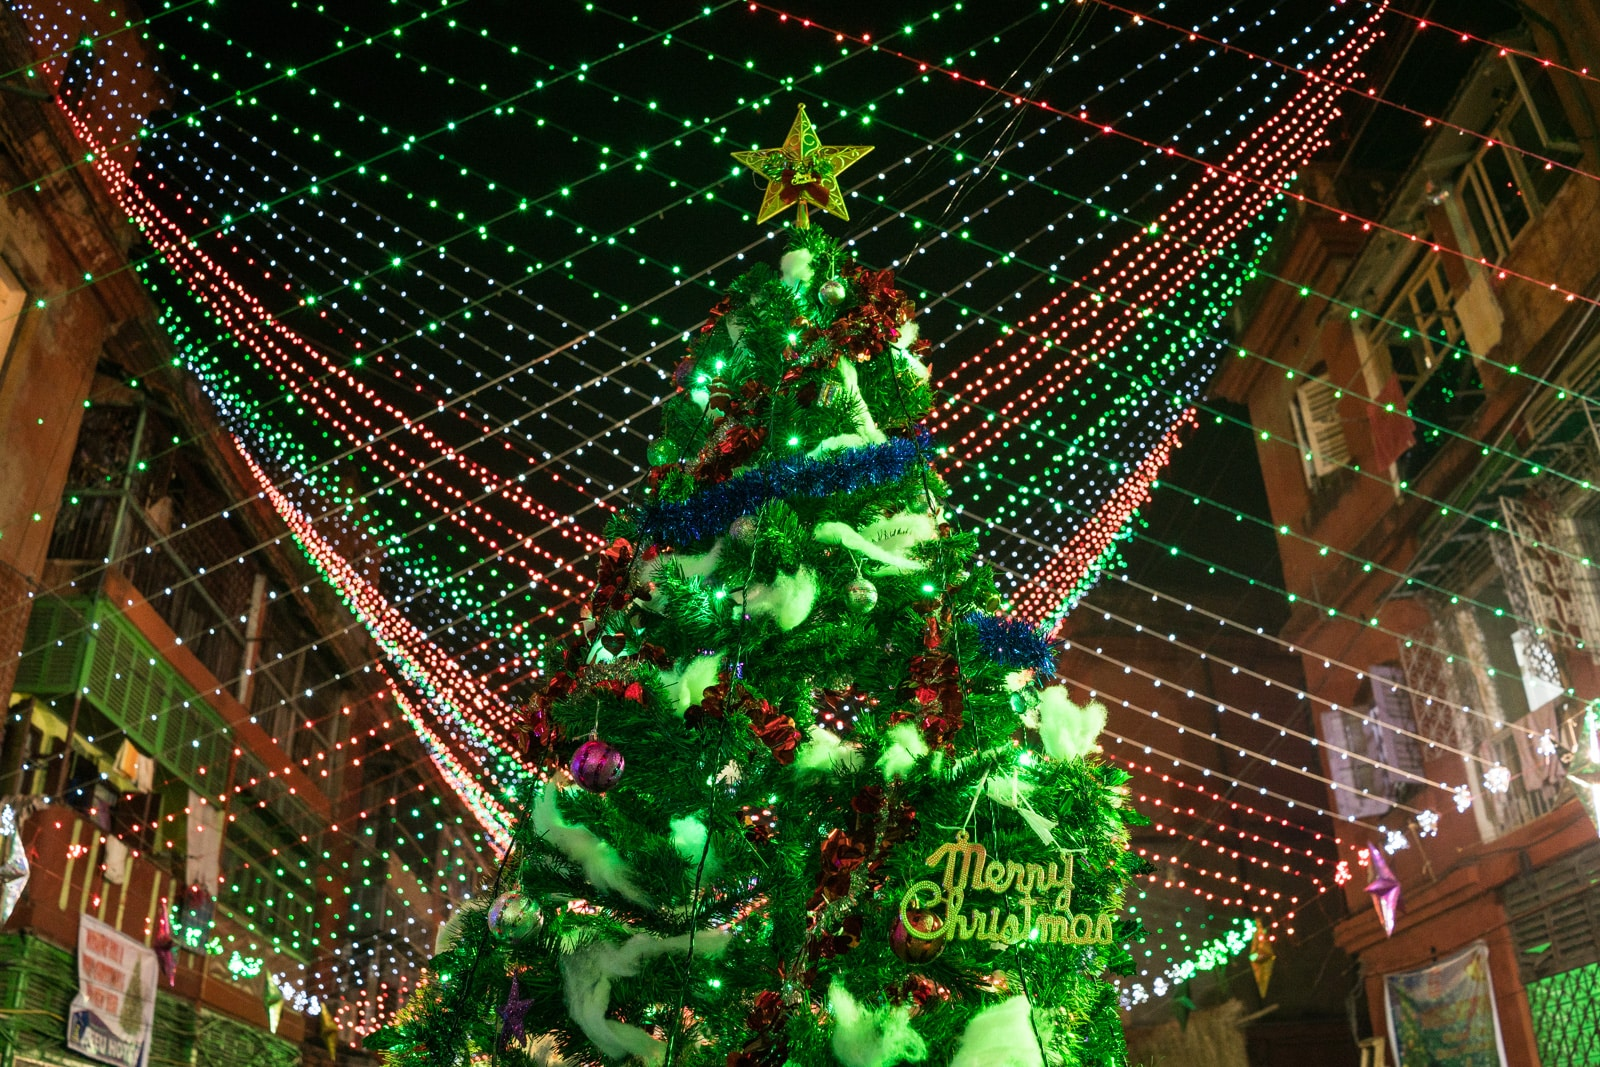 Celebrating Christmas in Kolkata, India - Christmas tree - Lost With Purpose travel blog